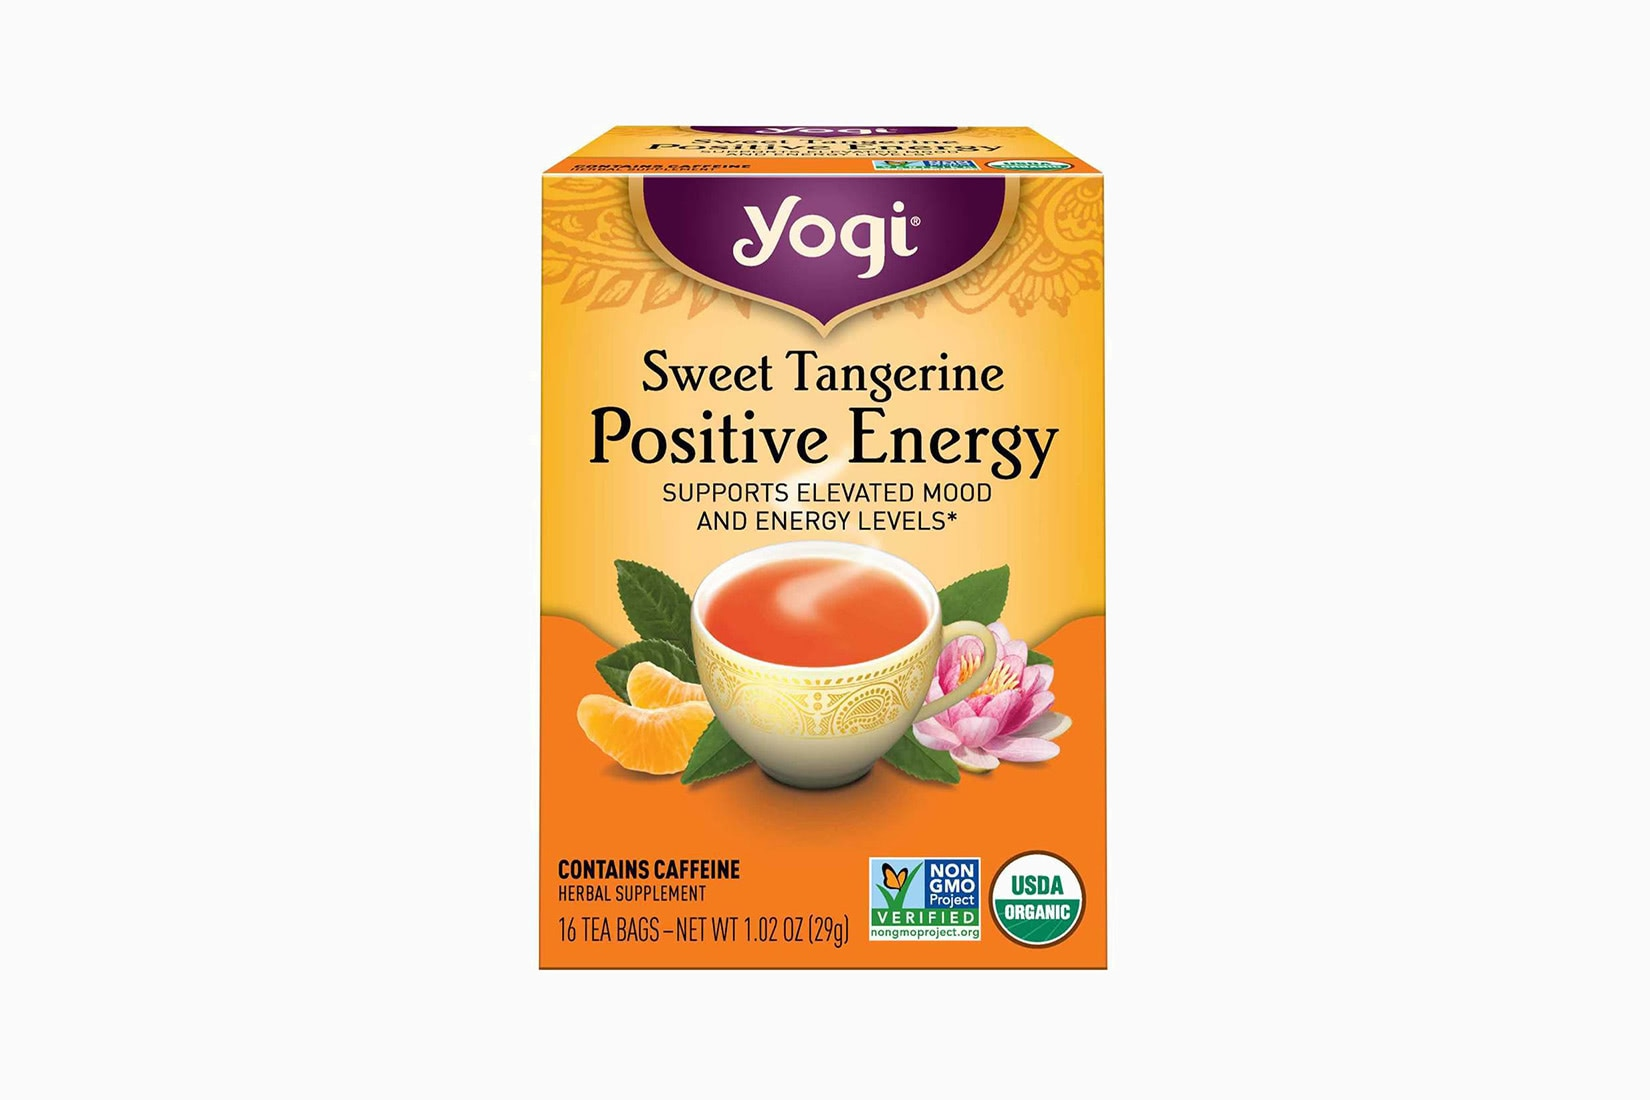 best tea brands yogi sweet tangerine - Luxe Digital